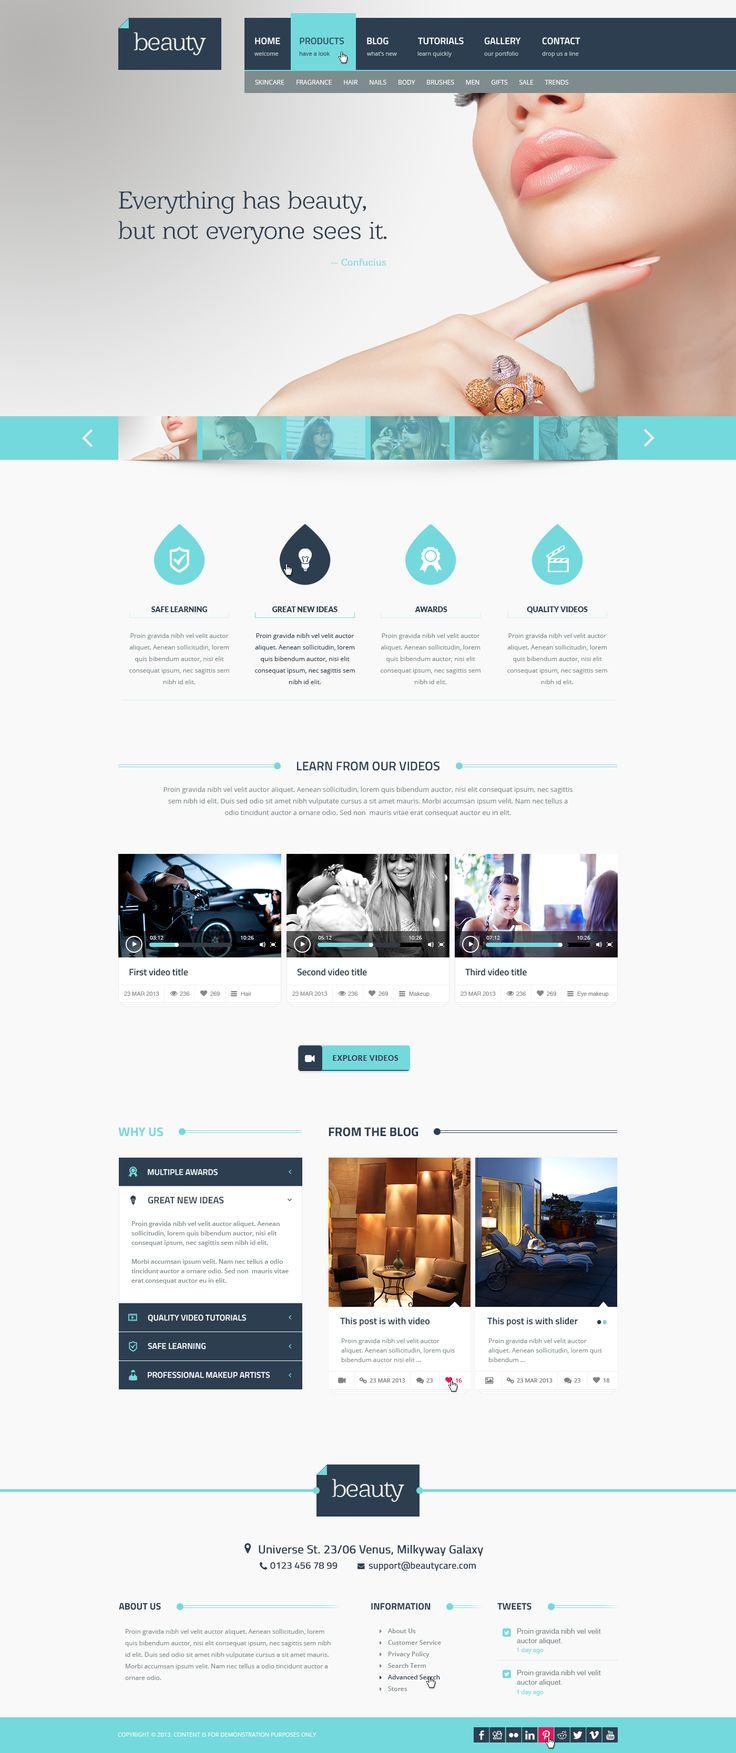 Beauty is a Flat Multipurpose PSD Template with an unique design for your business. It is designed also for online video tutorials and it includes a product page too.